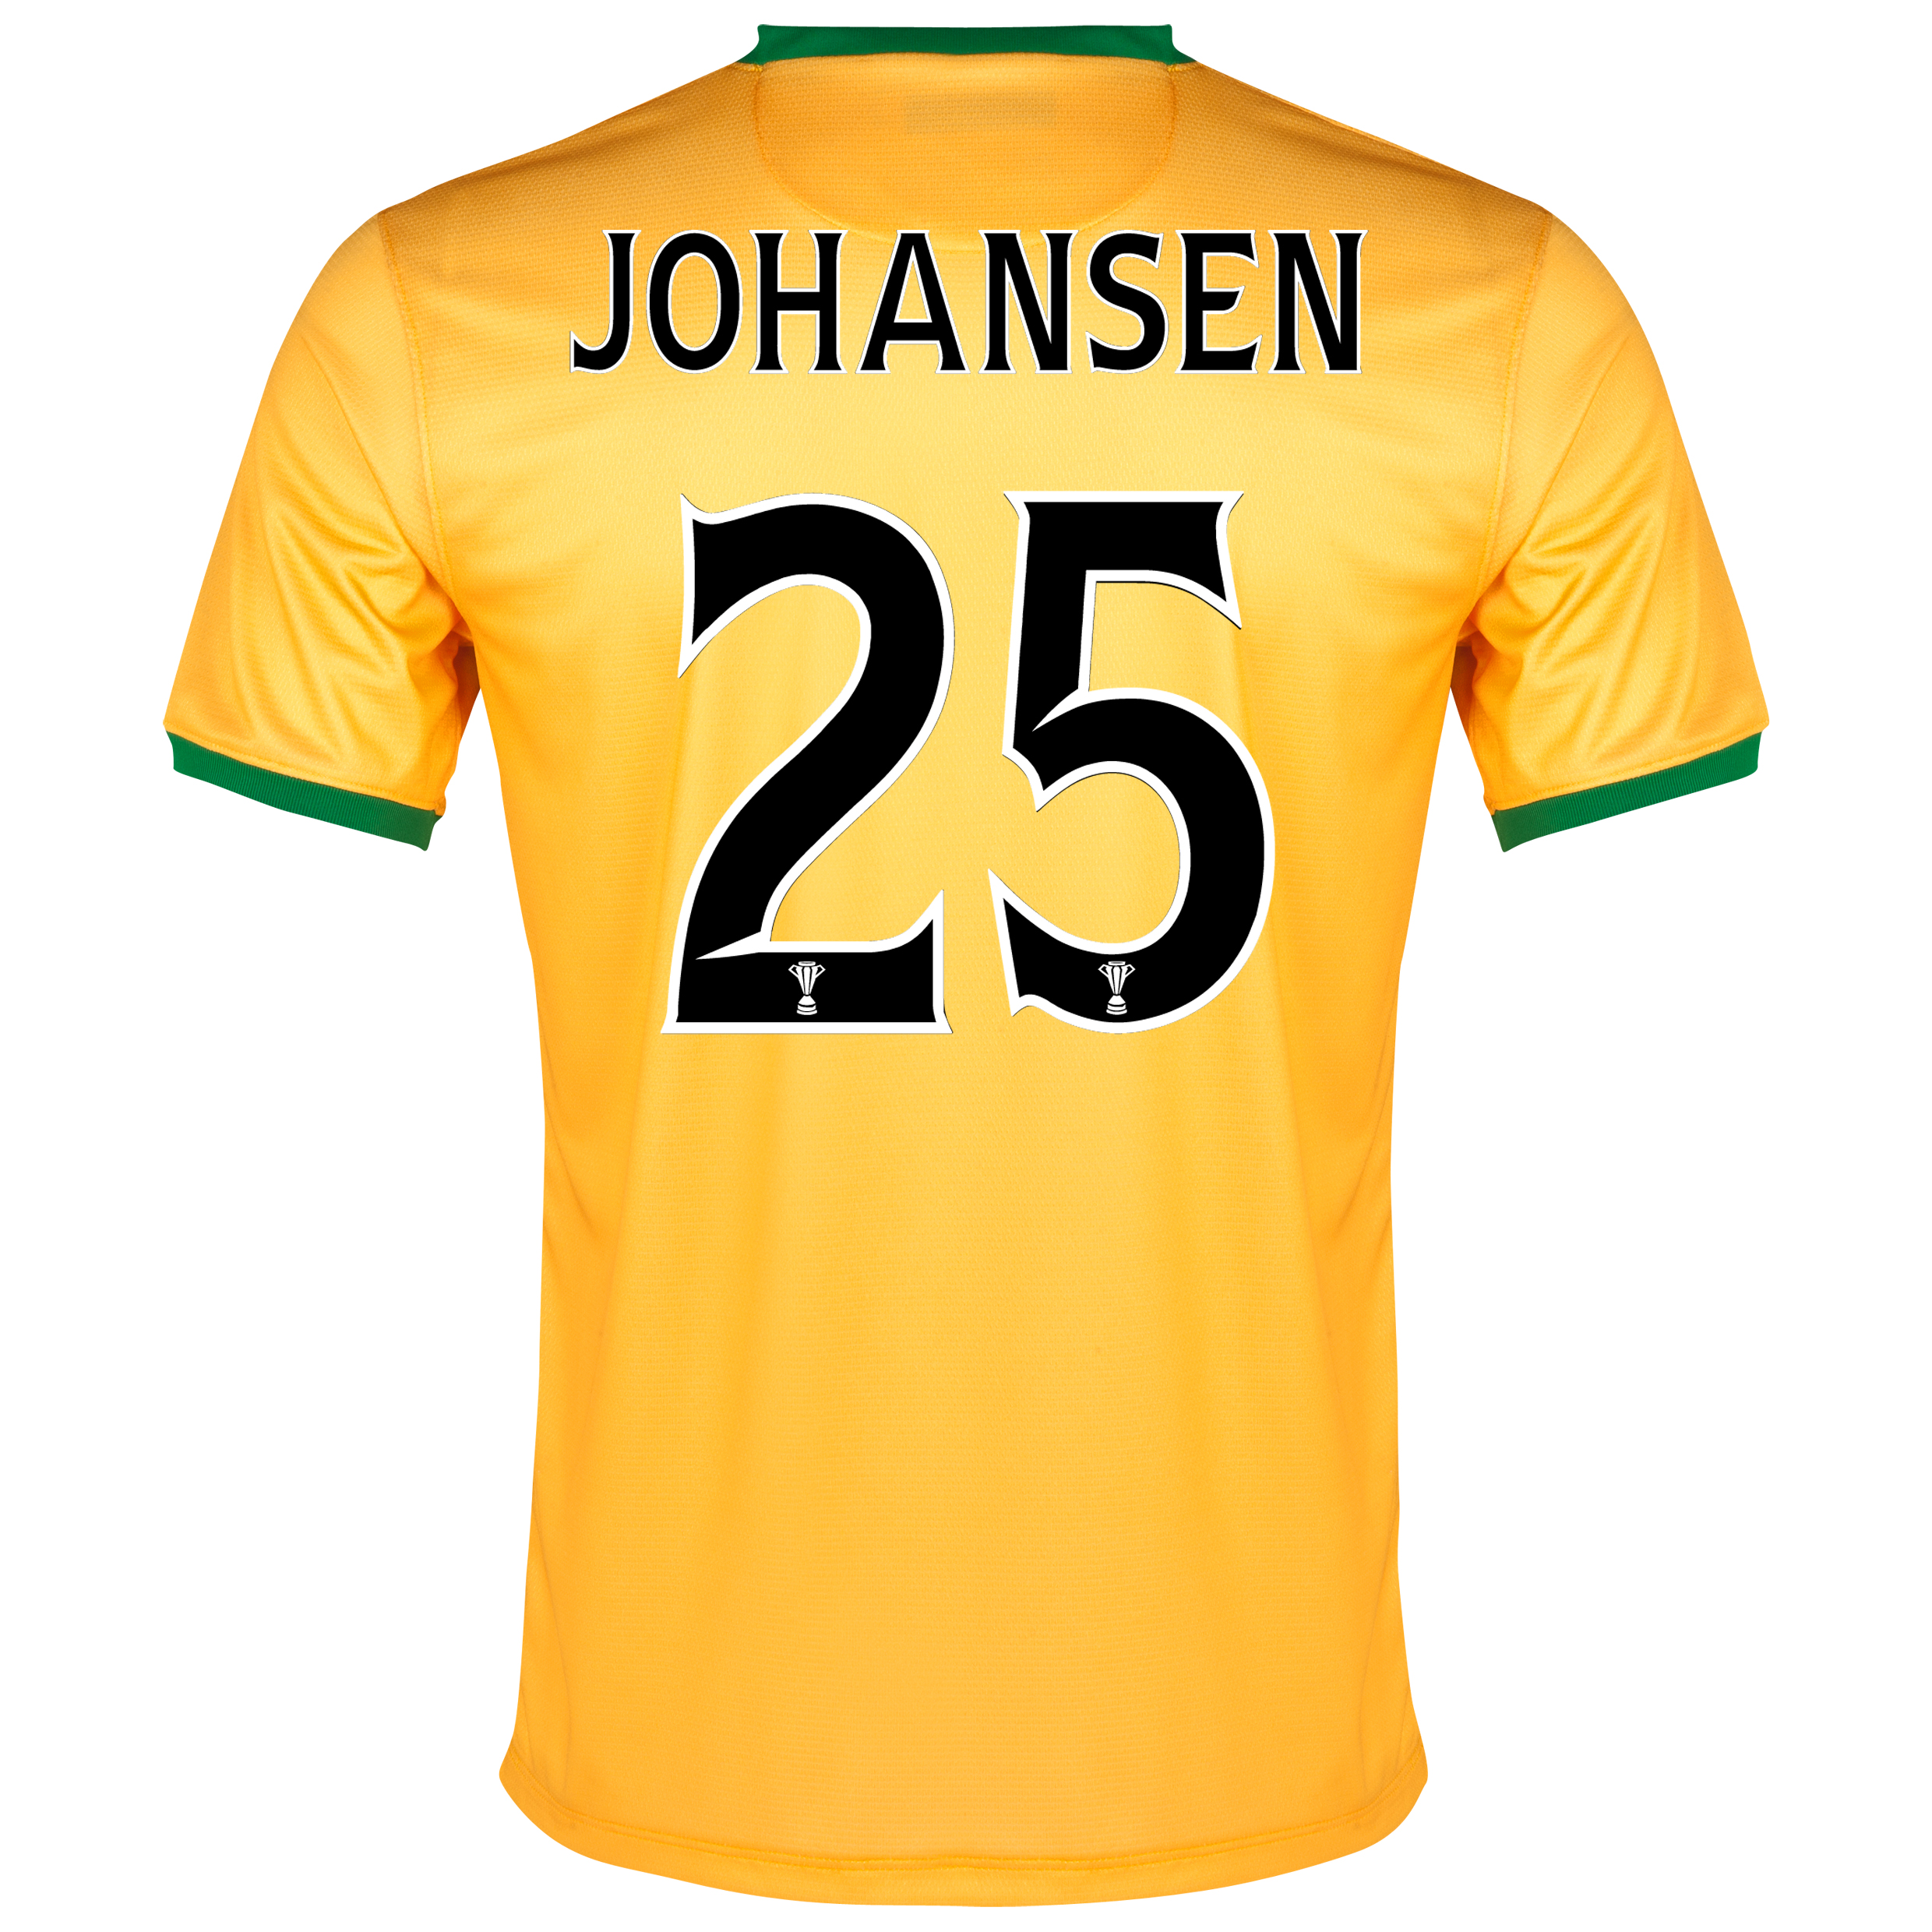 Celtic Away Shirt 2013/14 - With Sponsor with Johansen 25 printing